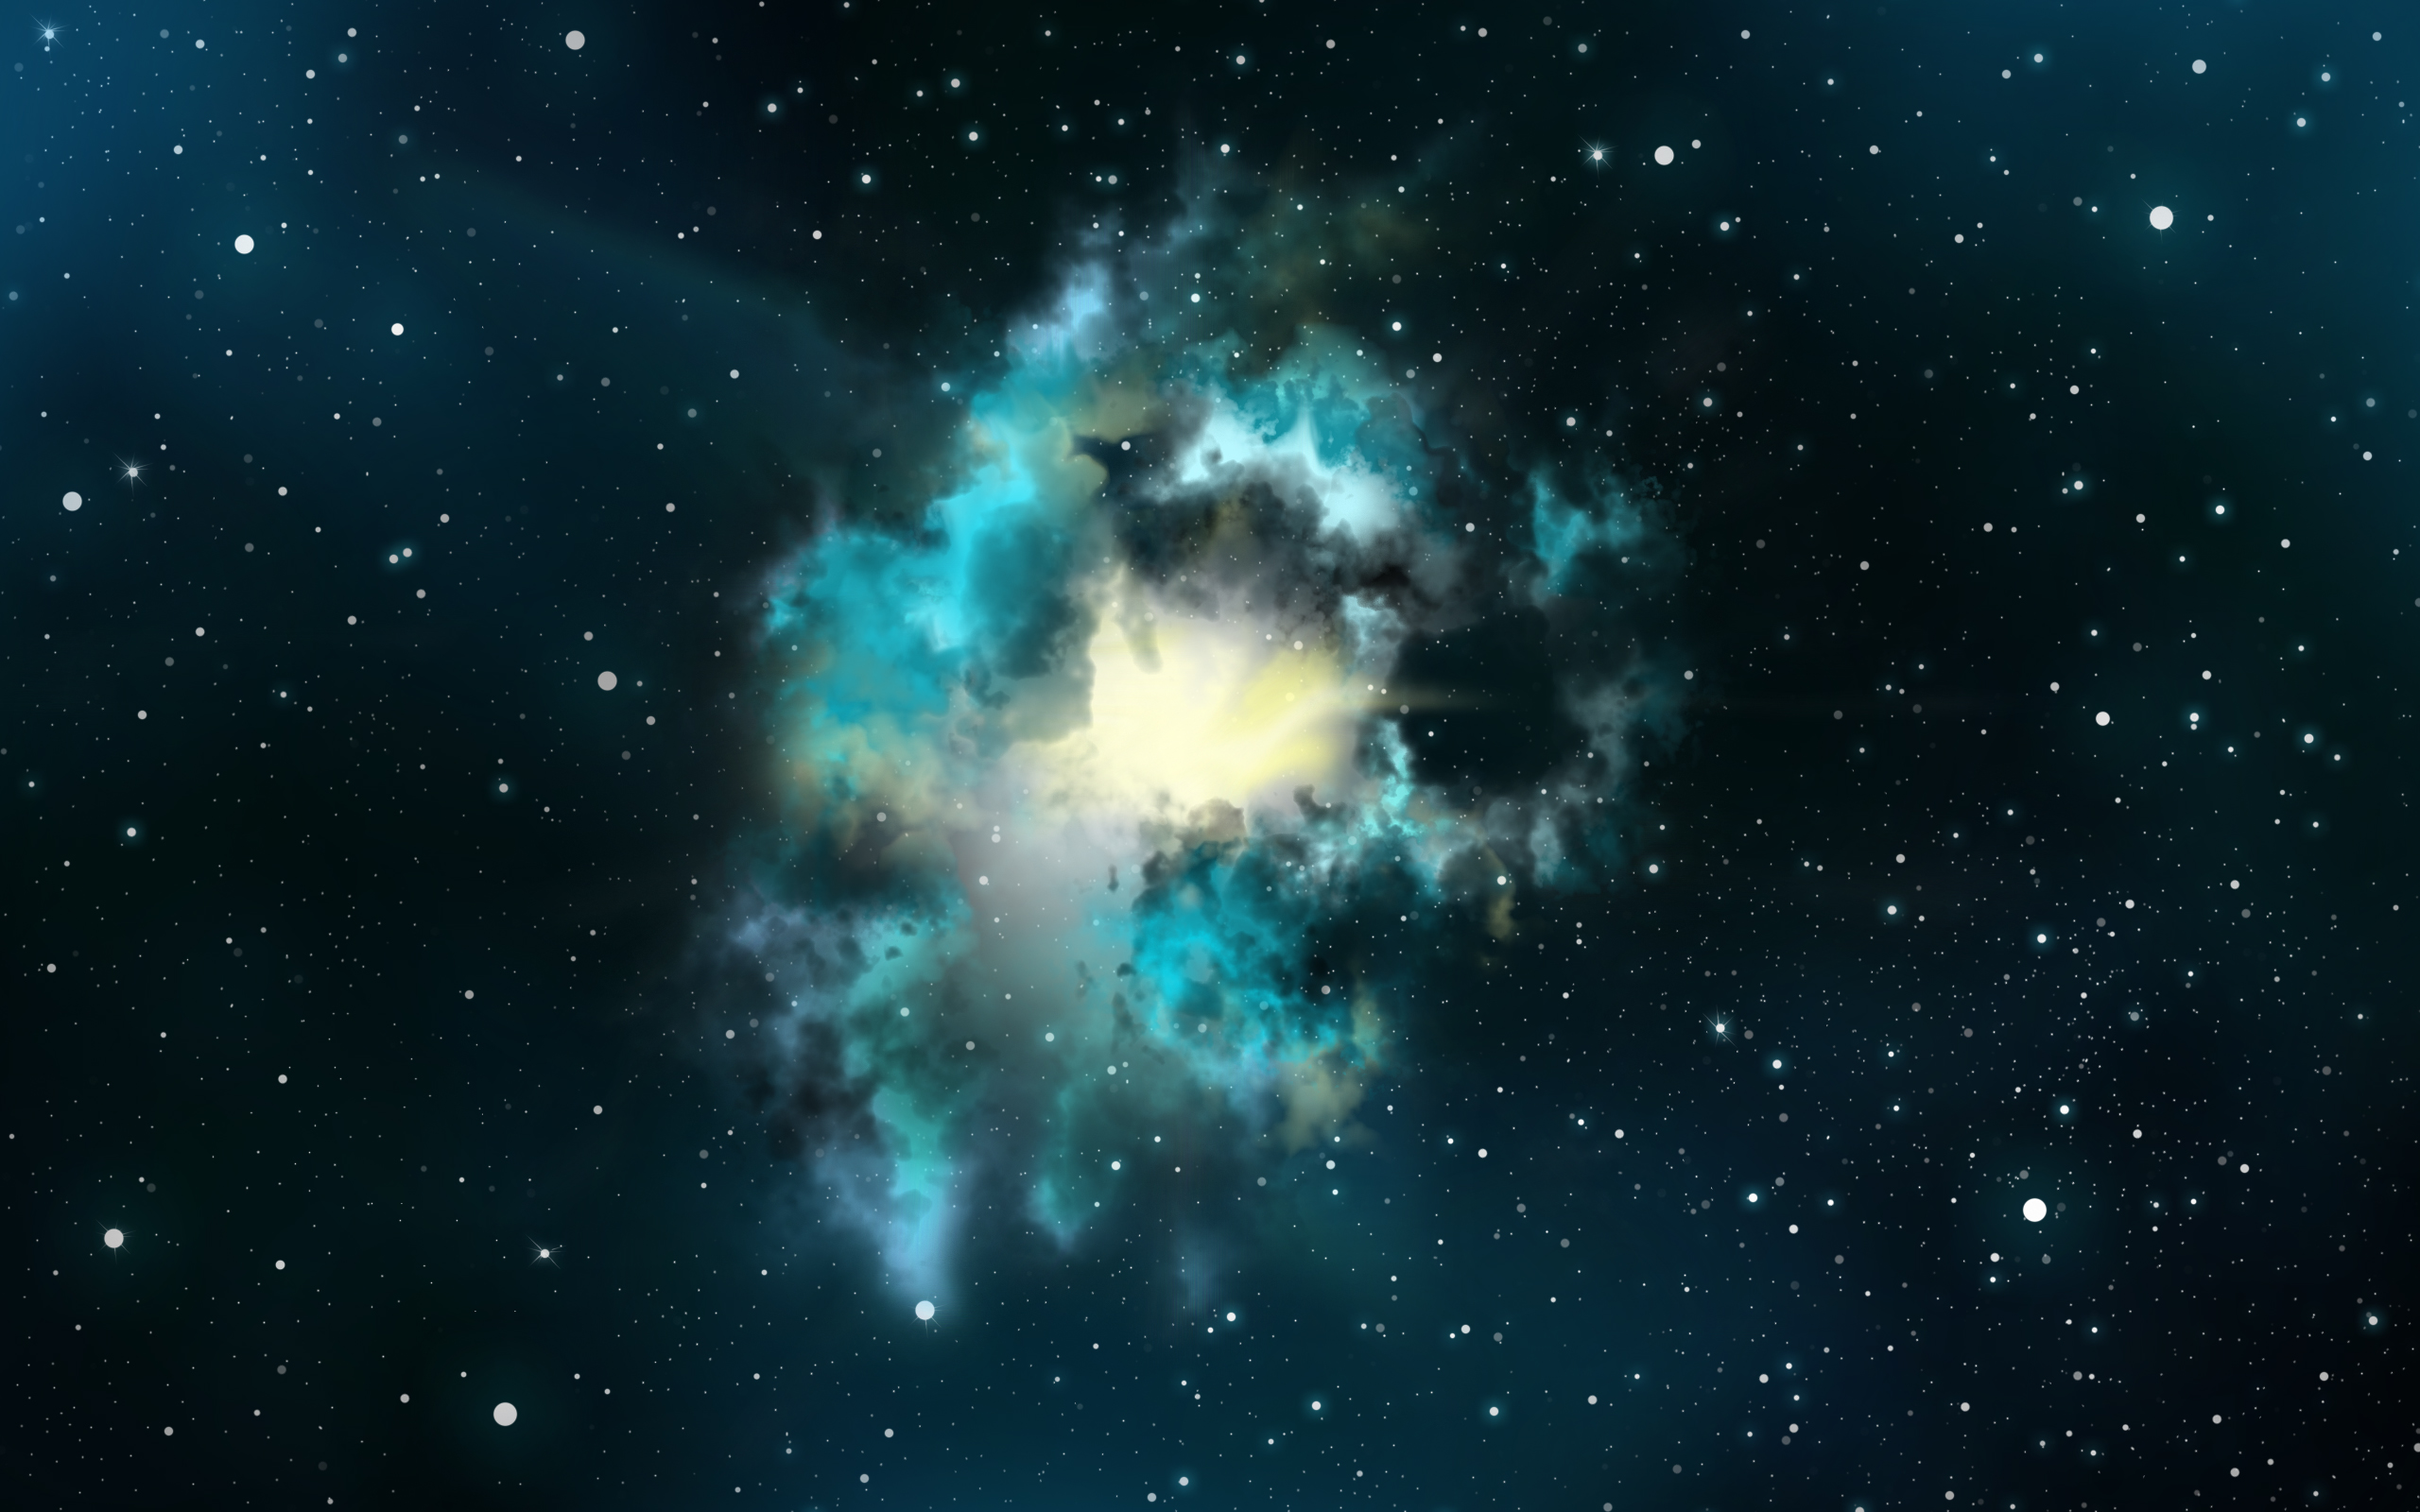 Abstract Space Christmas Wallpaper 2560×1600 Wallpaper